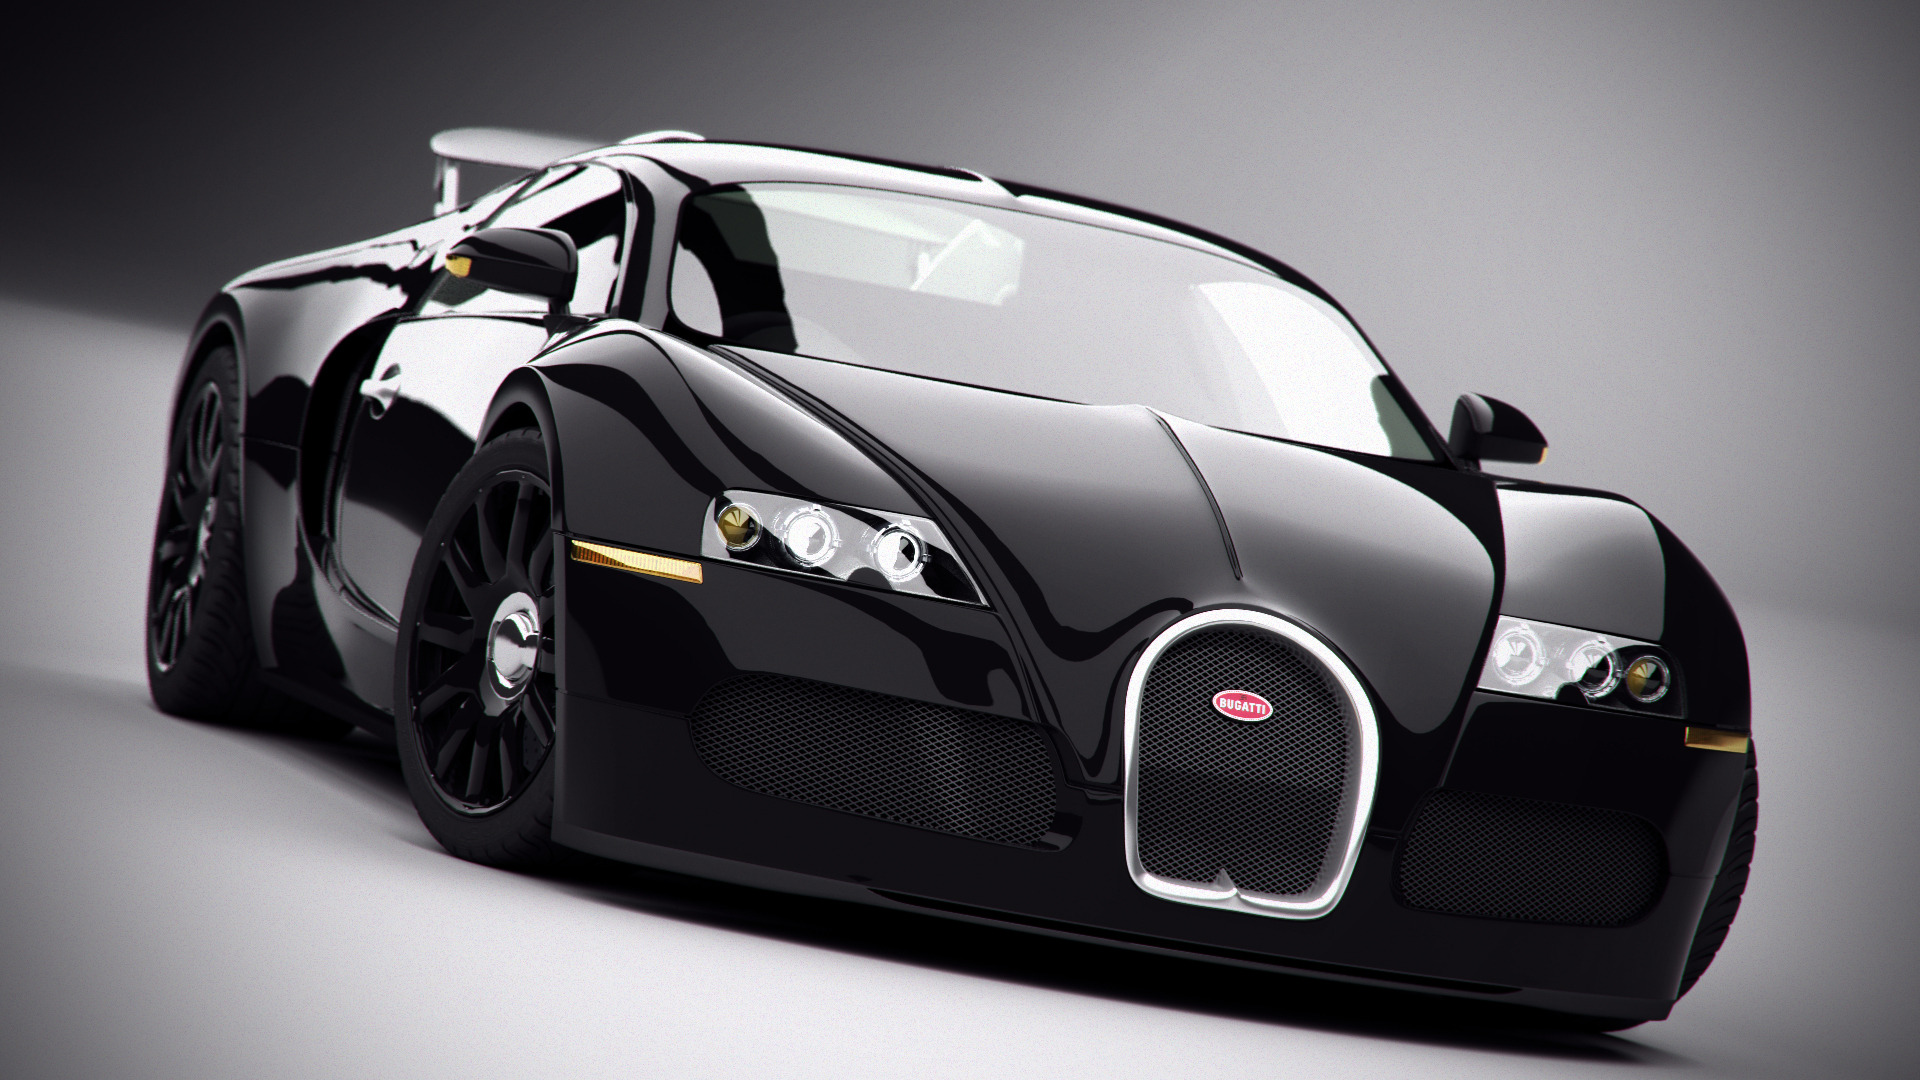 Awesome Bugatti Car HD Wallpaper Pack   Tech Bug   Best HD Wallpapers 1920x1080